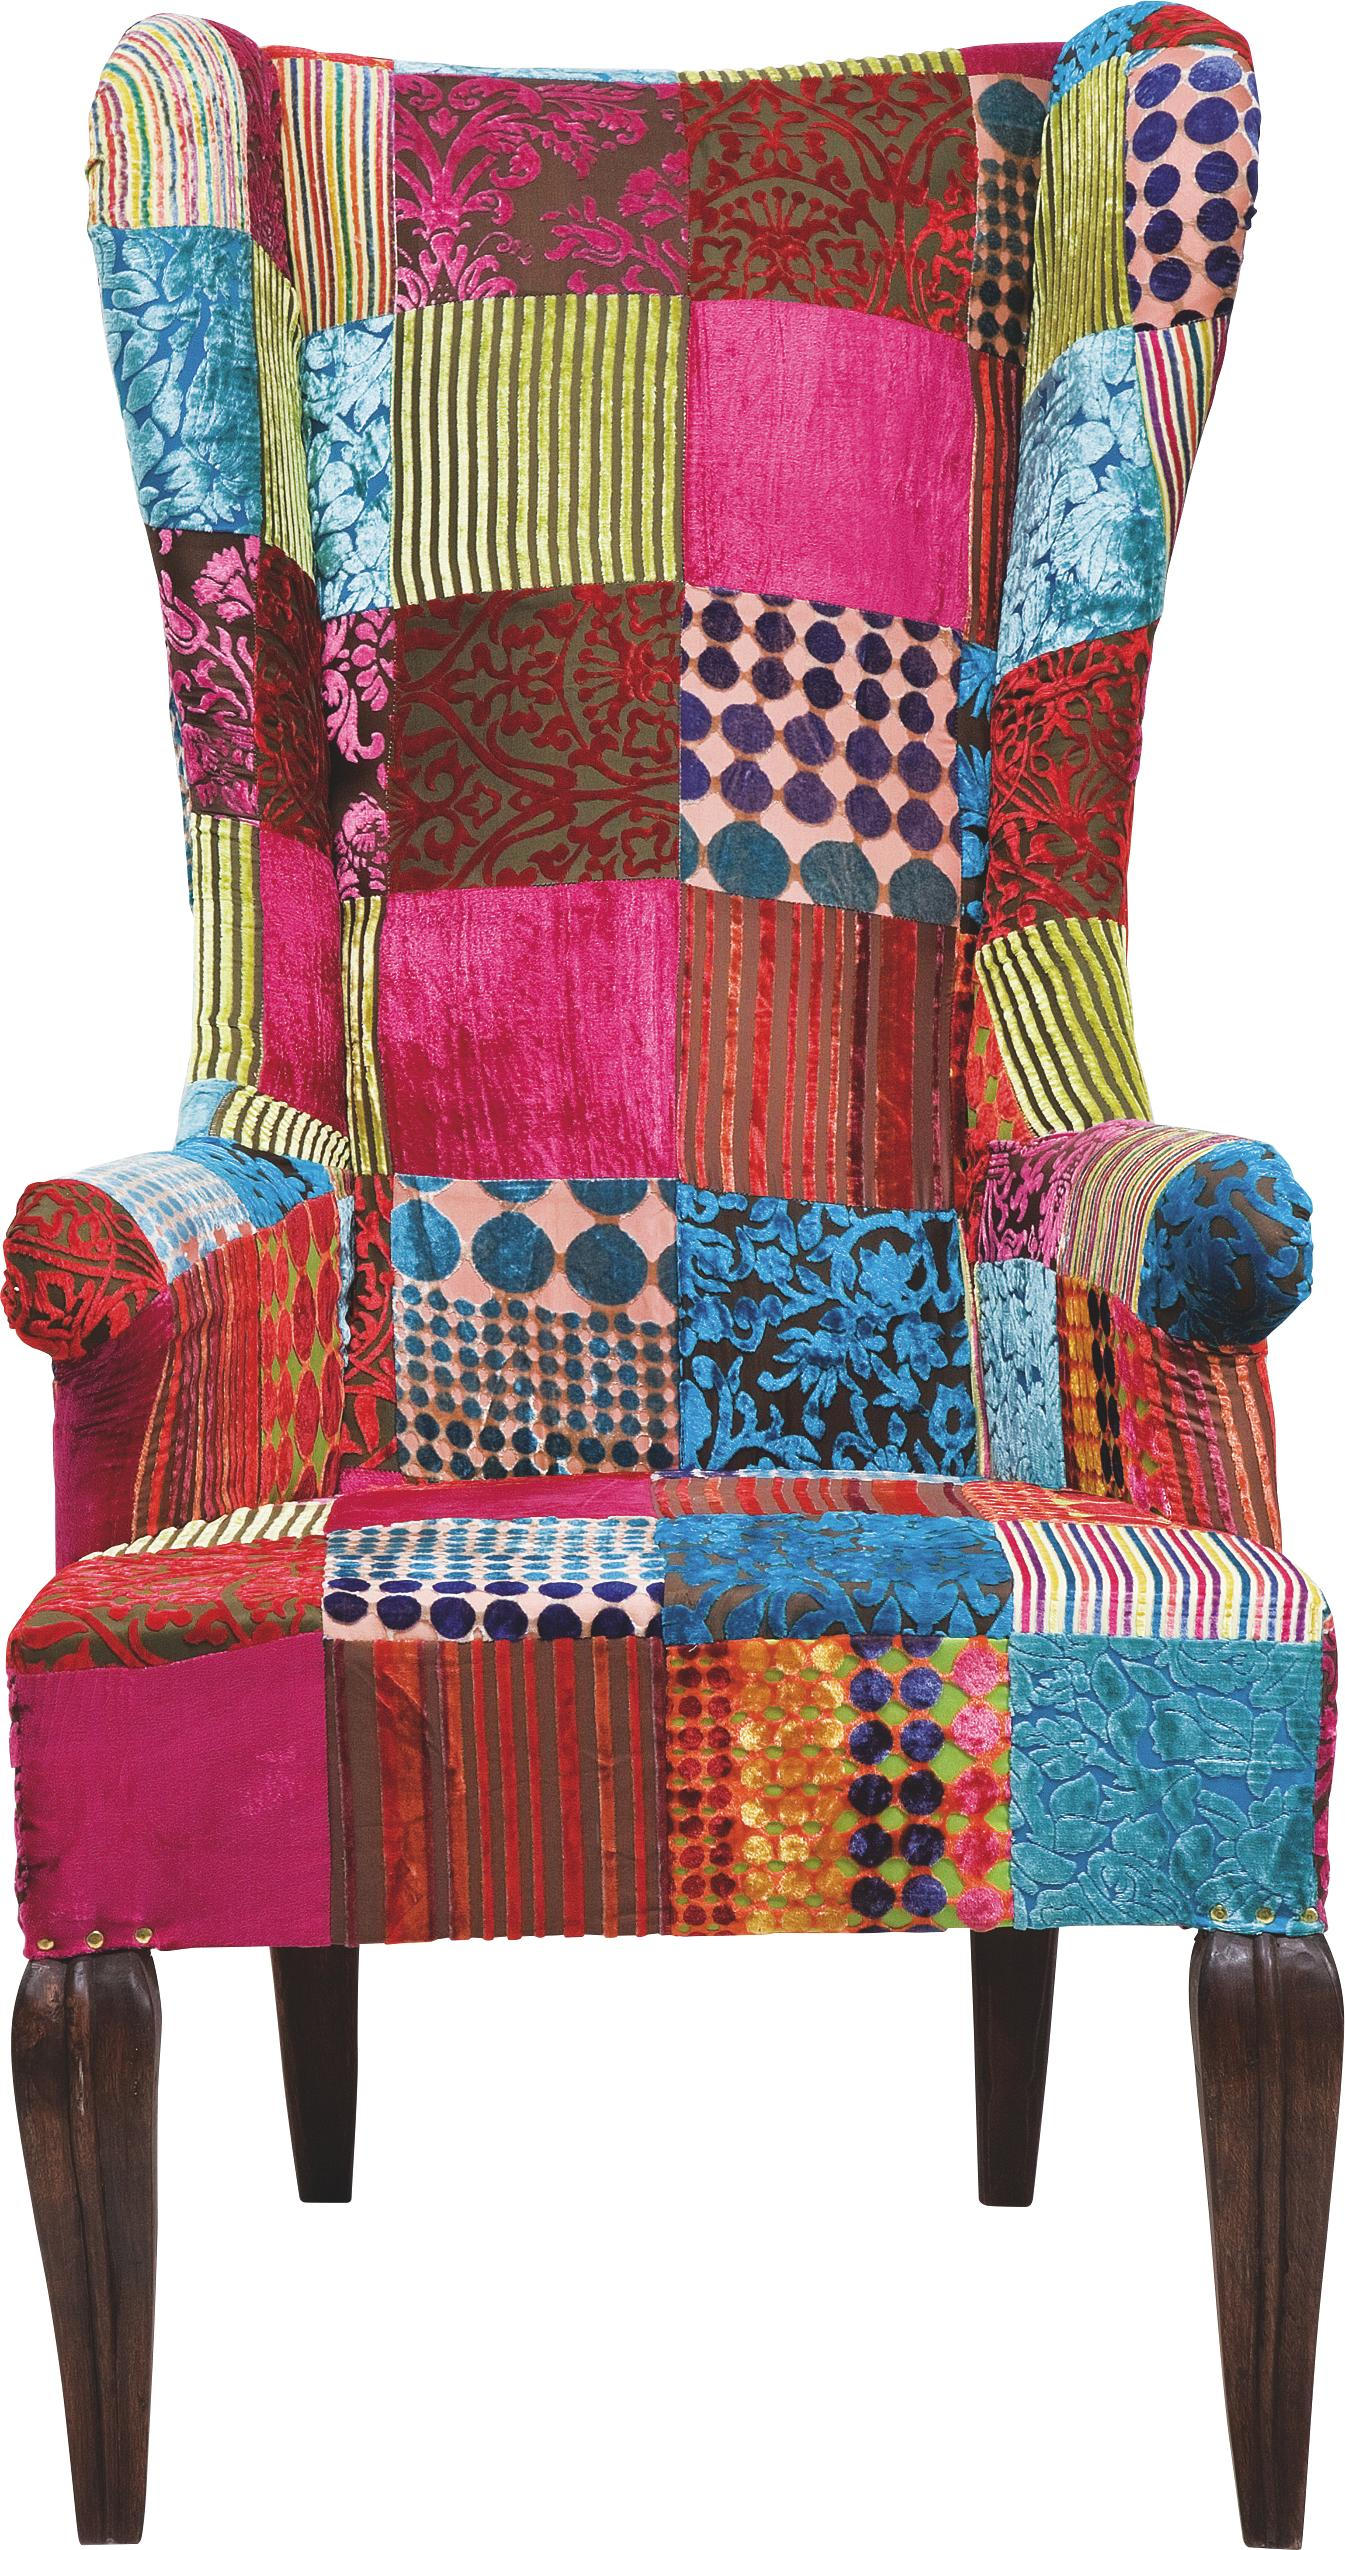 Ohrensessel Patchwork Ohrensessel Multicolor